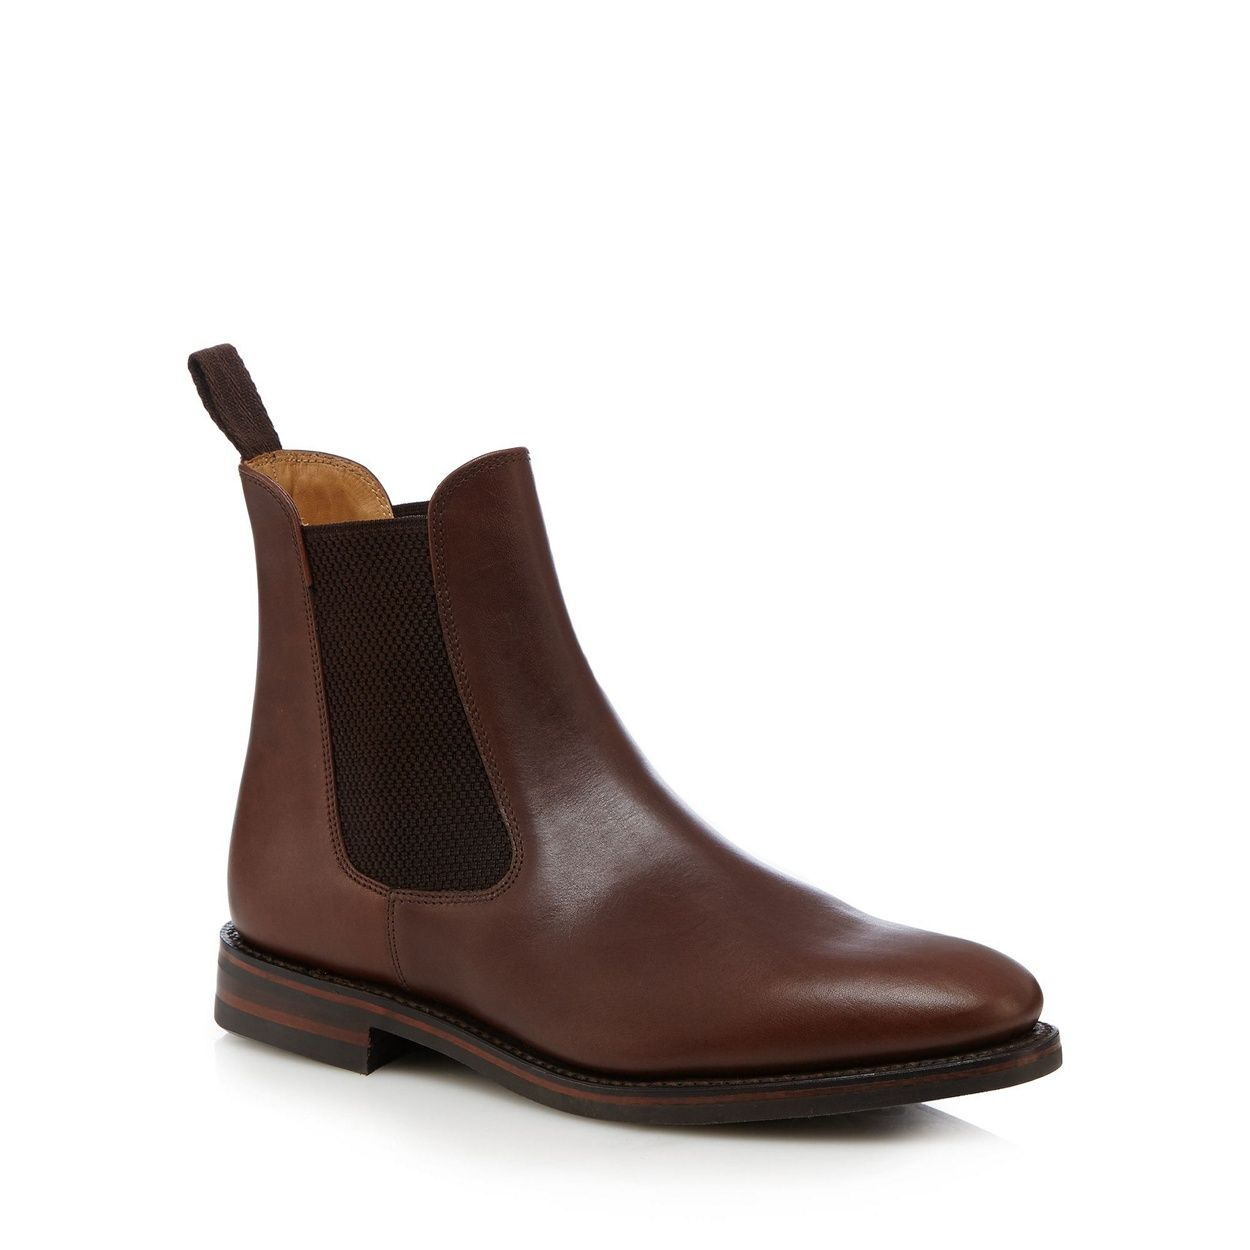 Men's Loake Brown Leather Boots Boots Boots Chelsea 'blenheim' Smart